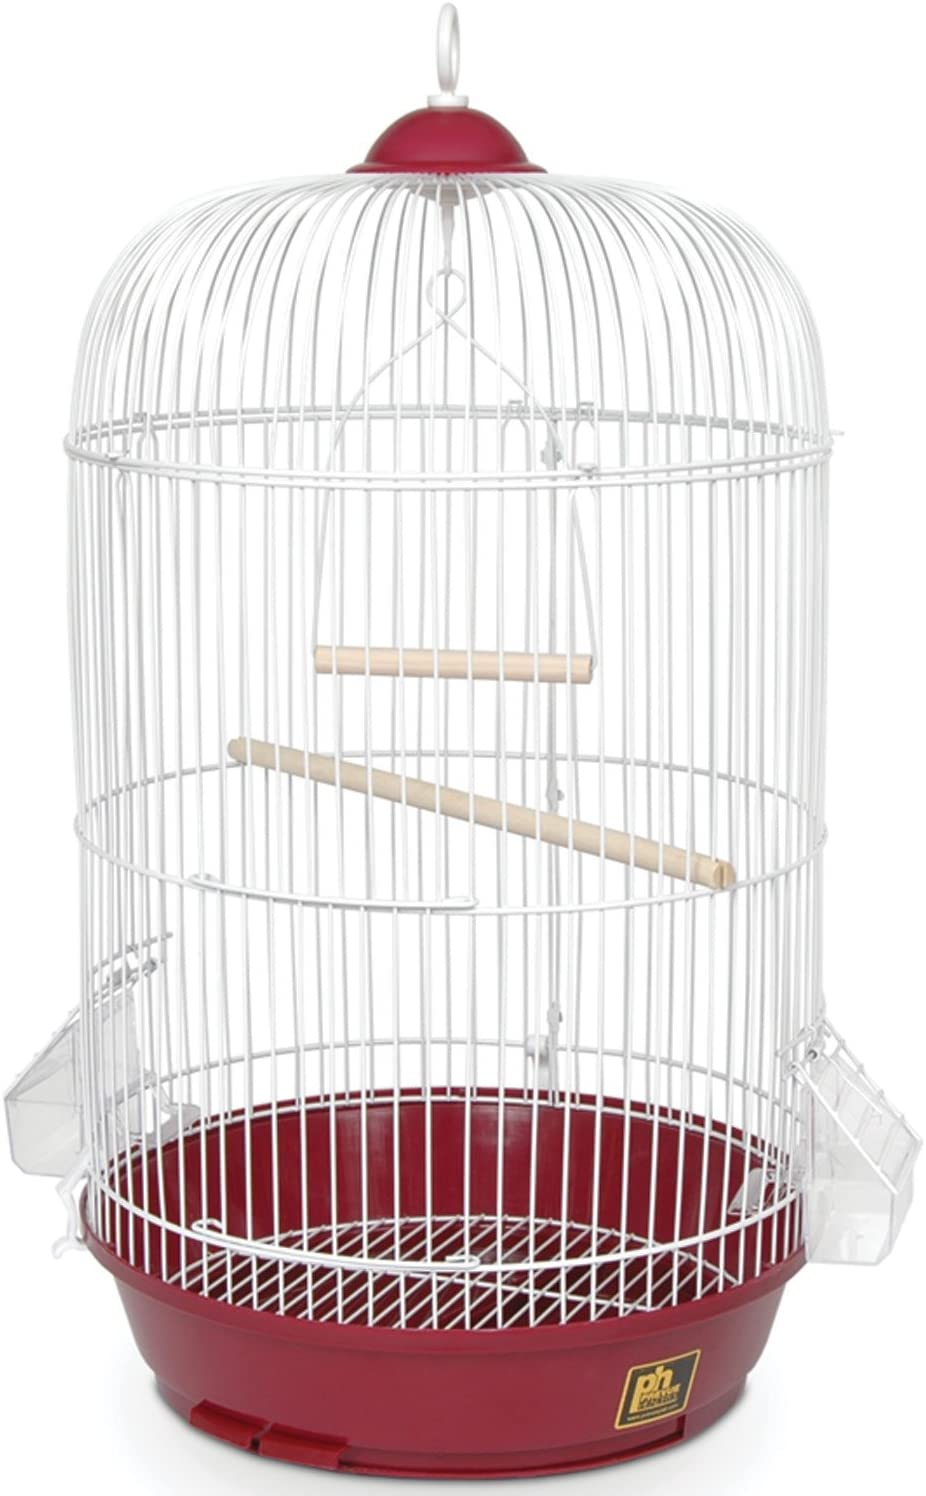 Prevue Hendryx Classic Round NEW before selling Bird OFFer Cage 1 SP31999R Red 2